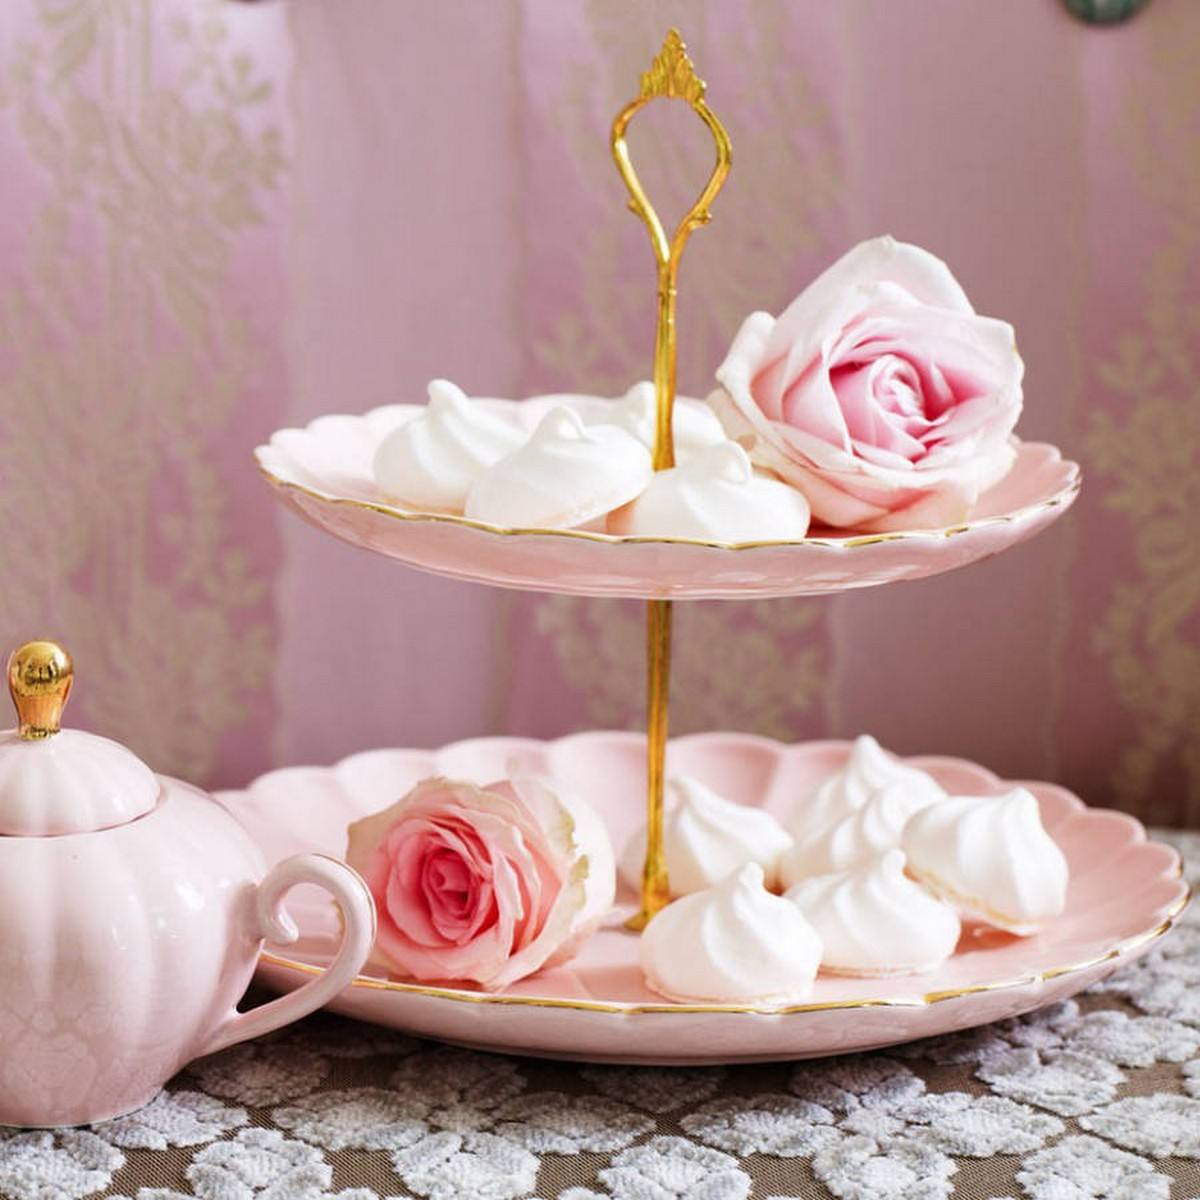 Every home baker needs at least one standard cake stand and then one or two more for special occasions.